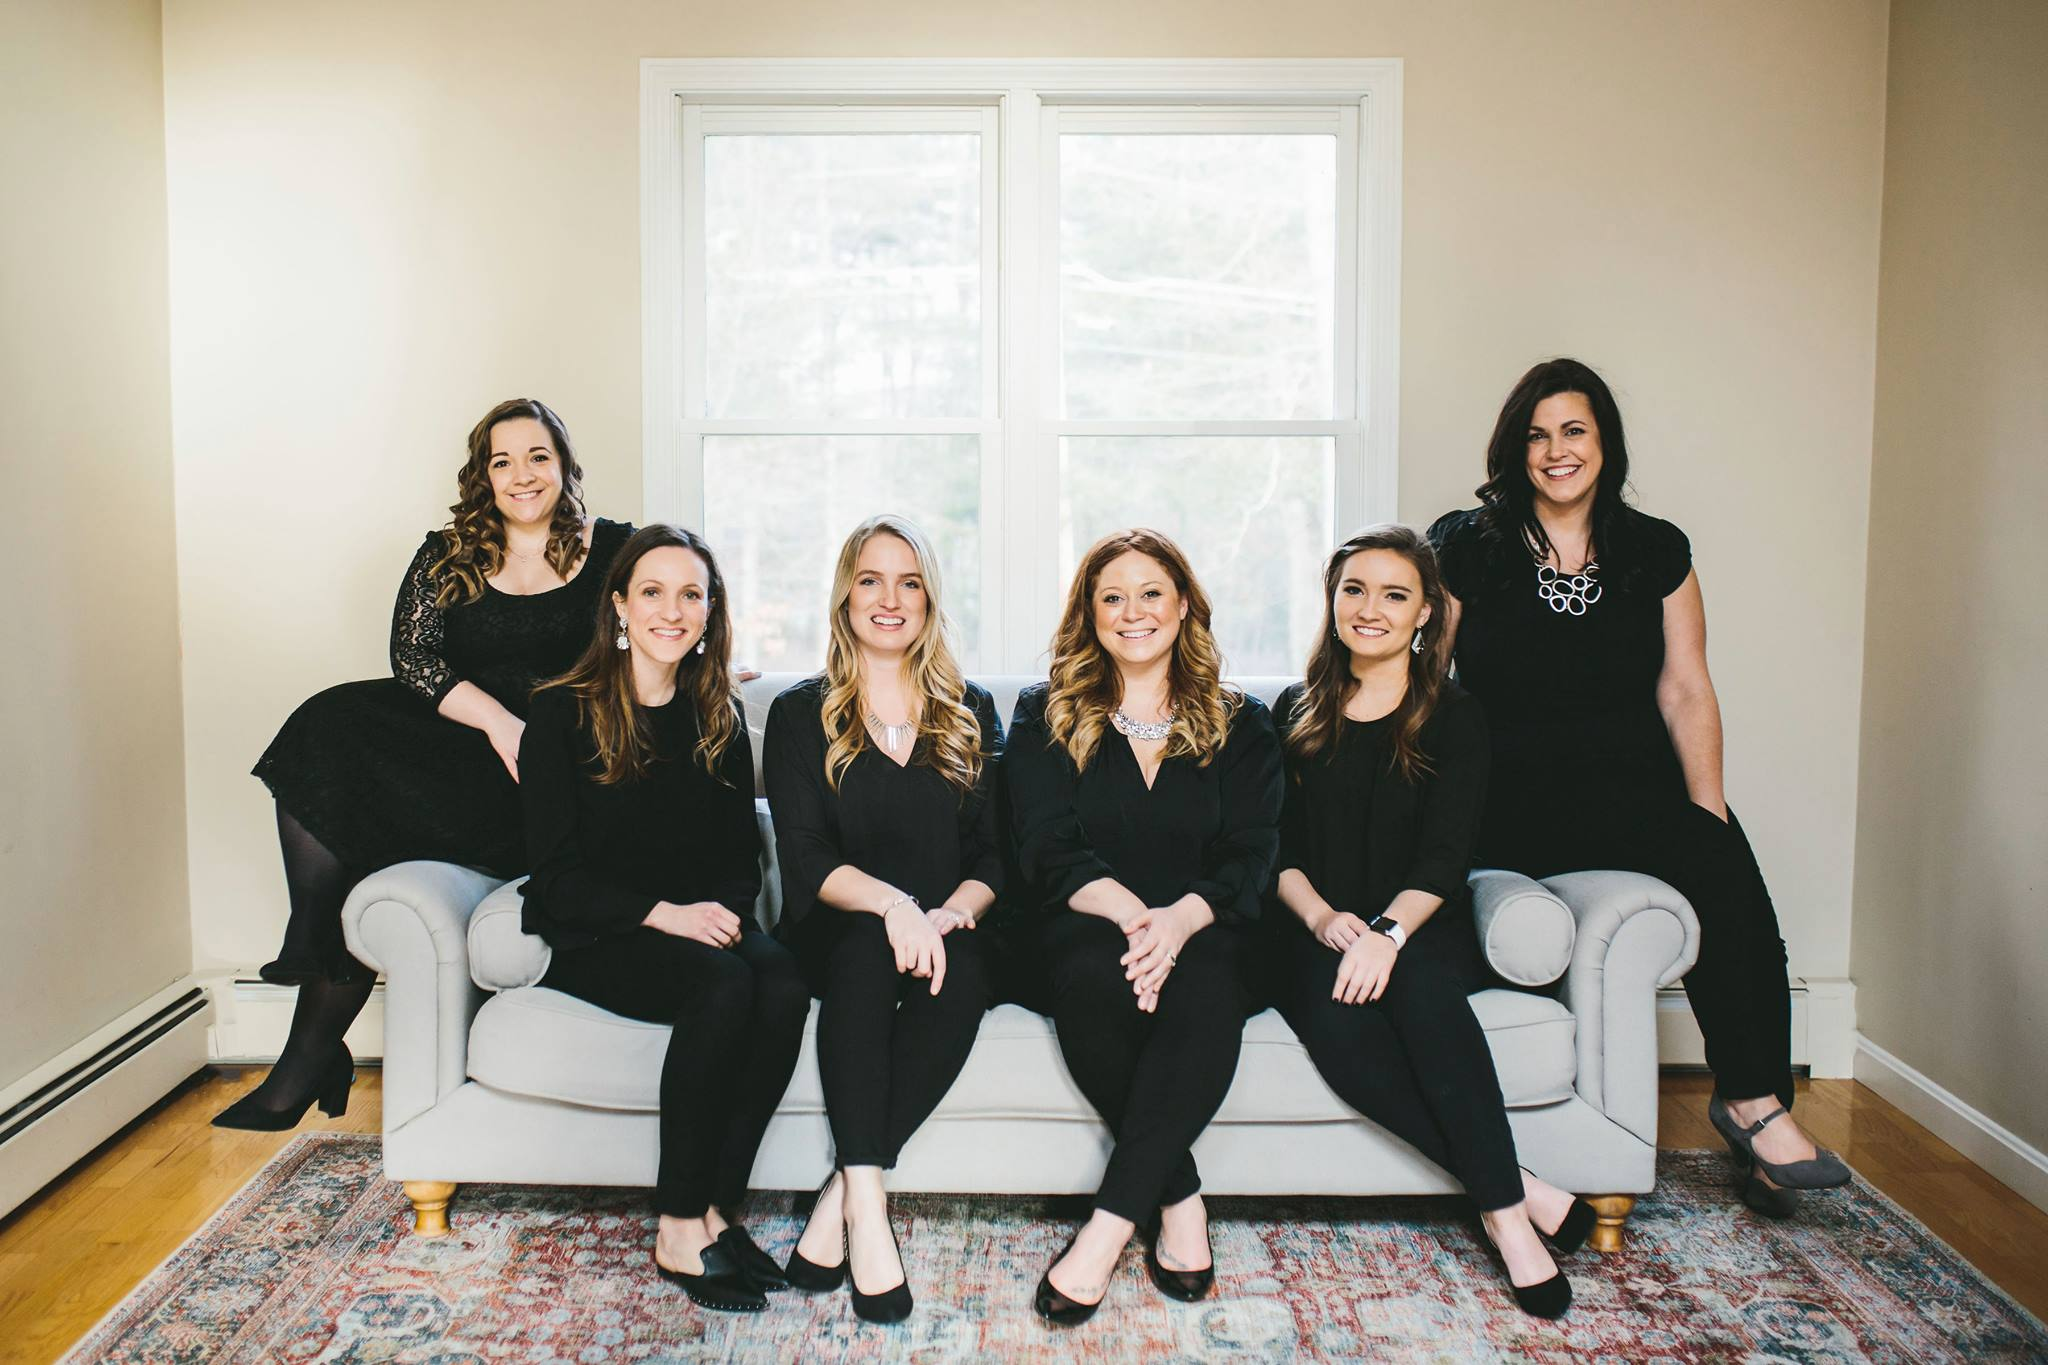 The All Aboard Event Planning Team - A Charitable Wedding Planning Business (photo by:  Oksana Miro Photography )